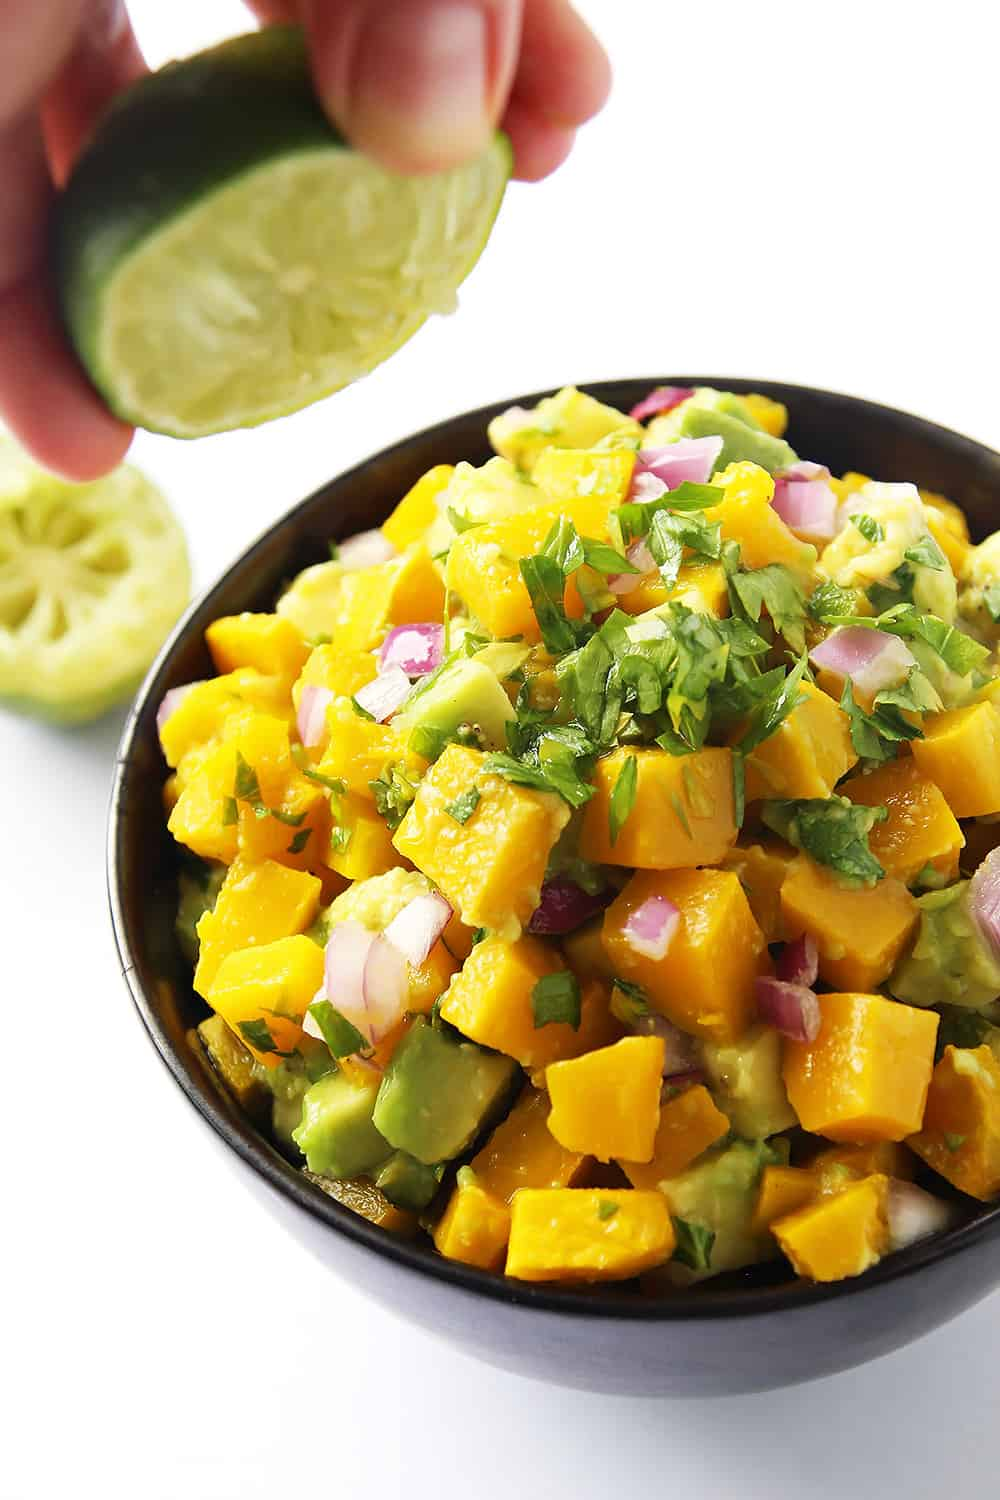 Pumpkin Avocado Salsa is a refreshing seasonal twist on the classic dip and condiment. With roasted pumpkin and creamy avocado this salsa is great served with tacos and grilled meats.